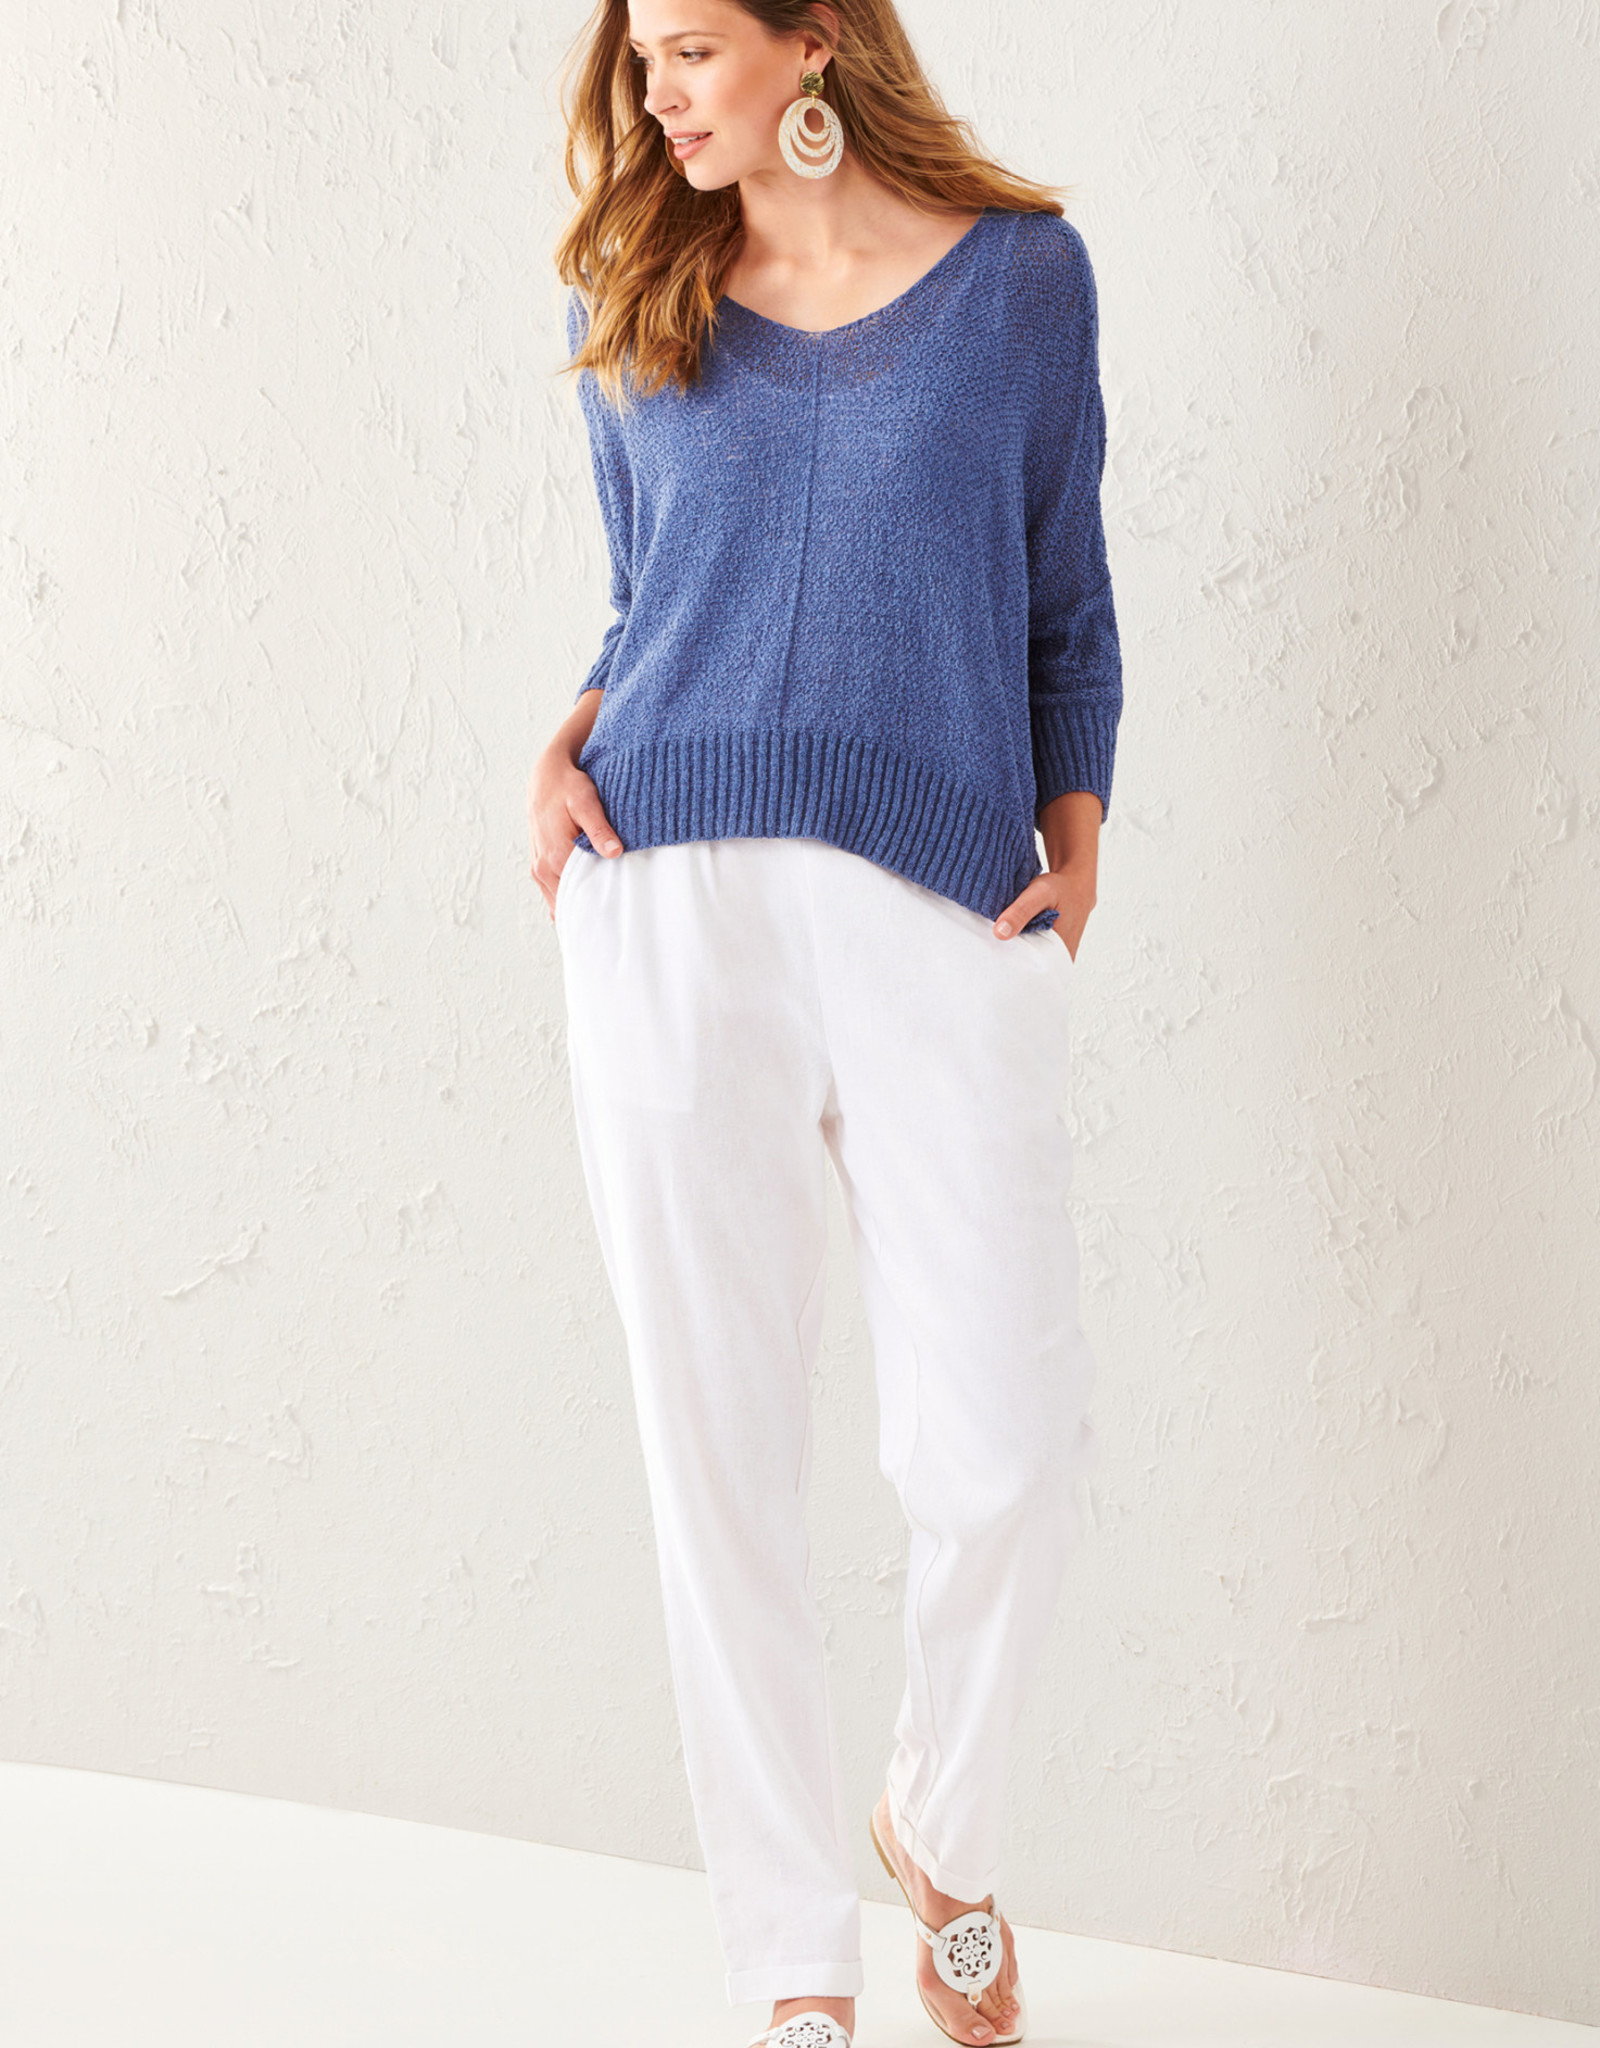 Charlie Paige CP - Knitted Sweater (4 Colors)